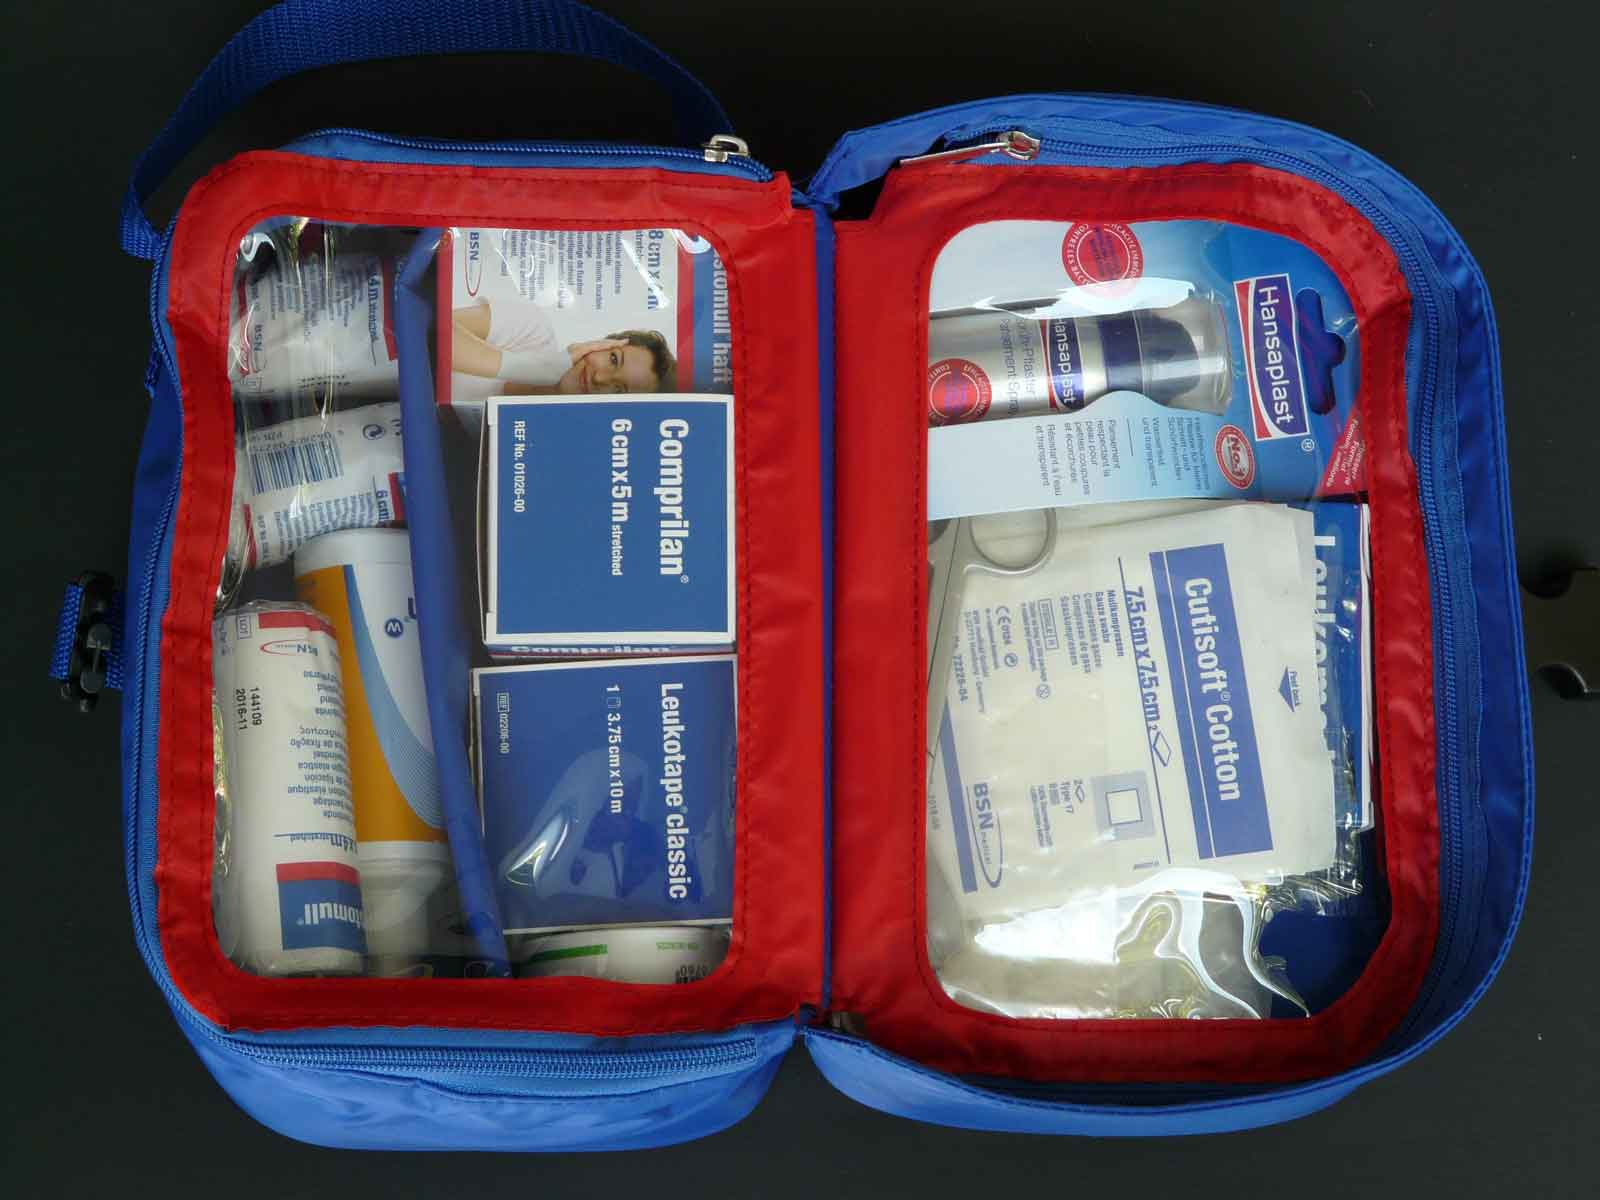 Hiking in the rain: first aid kit